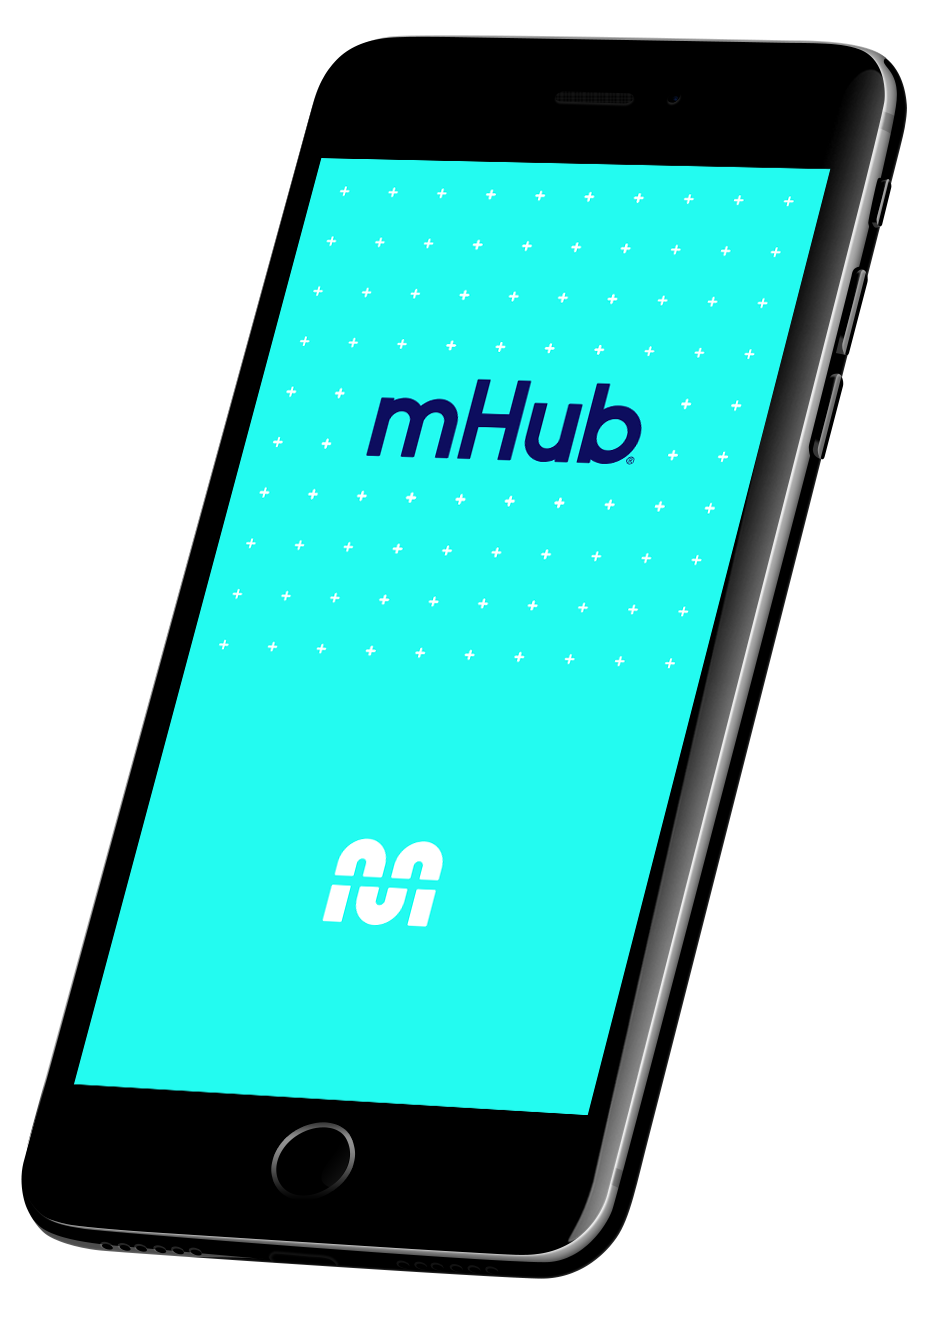 Phone showing mHub logo